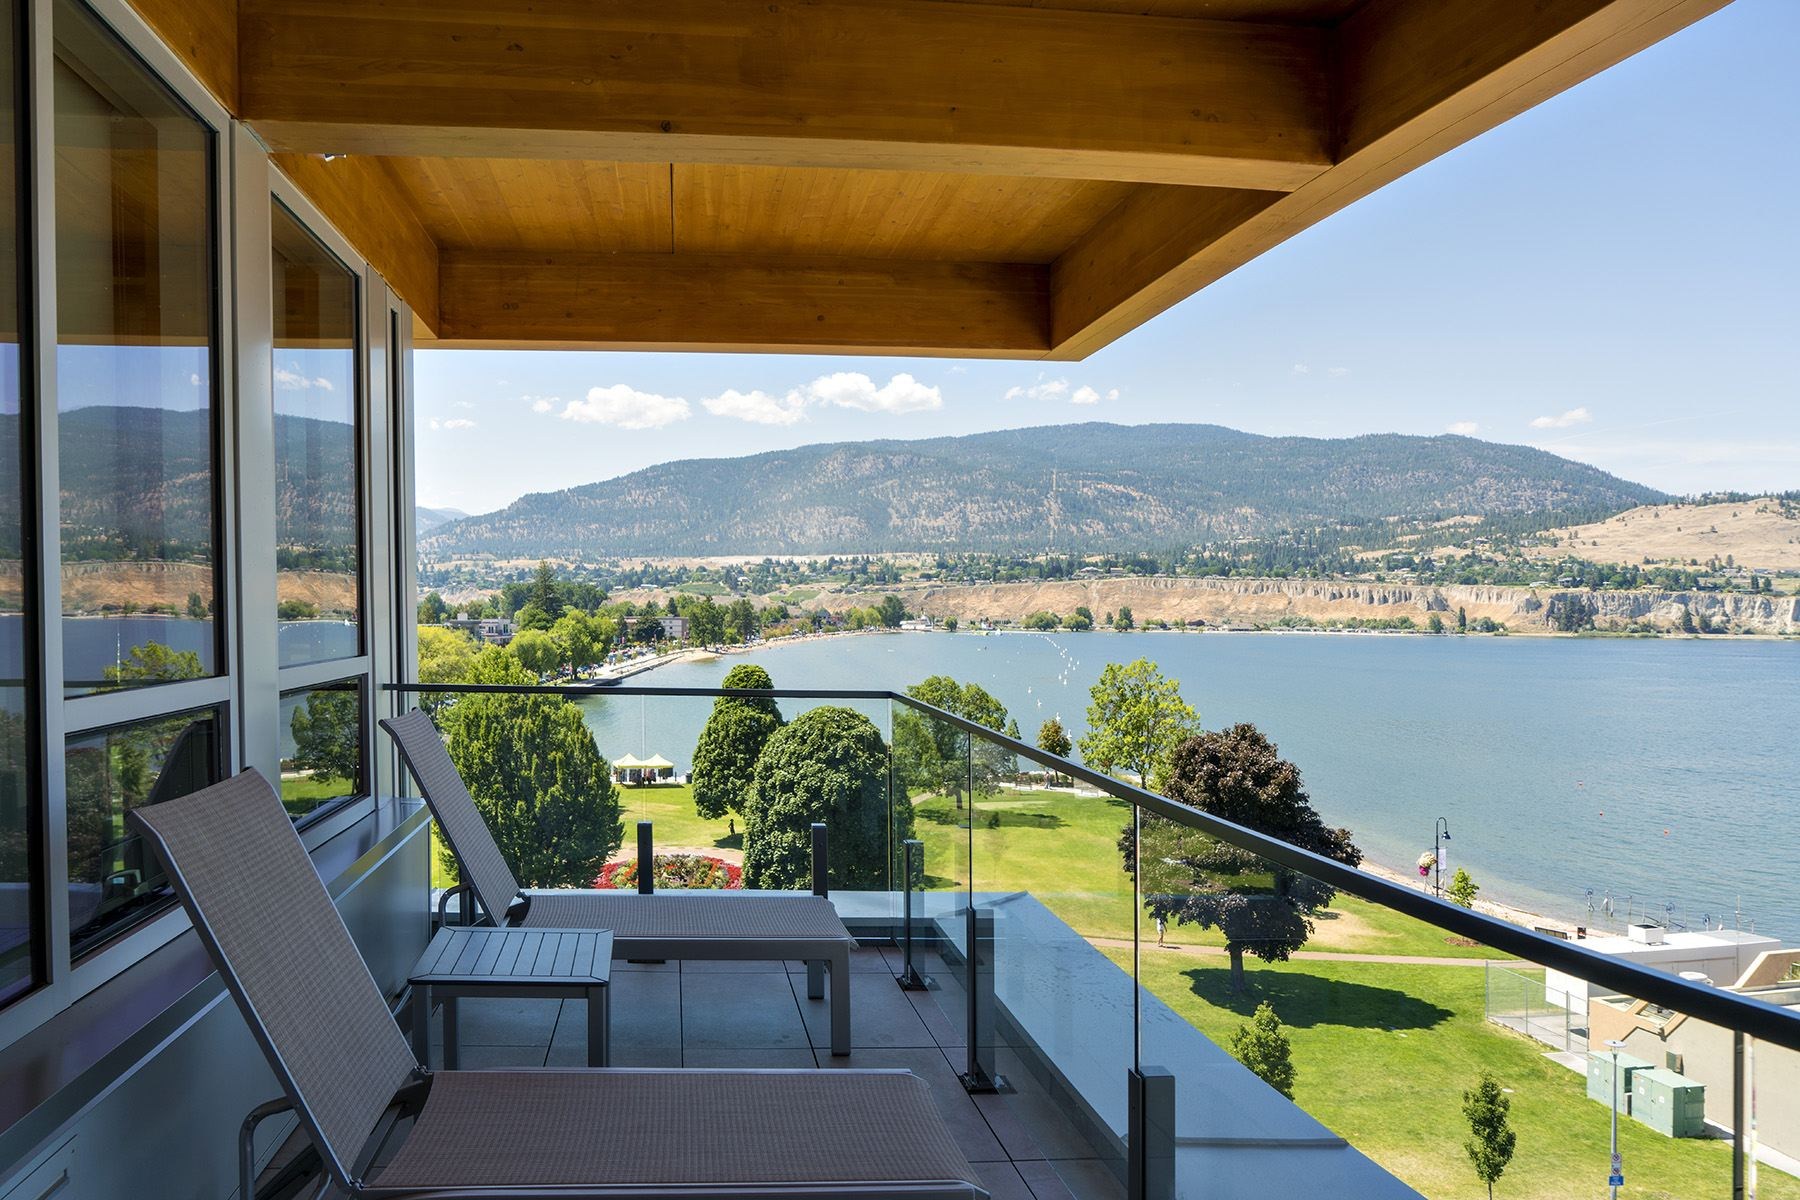 Lakeside Resort Penticton Bc